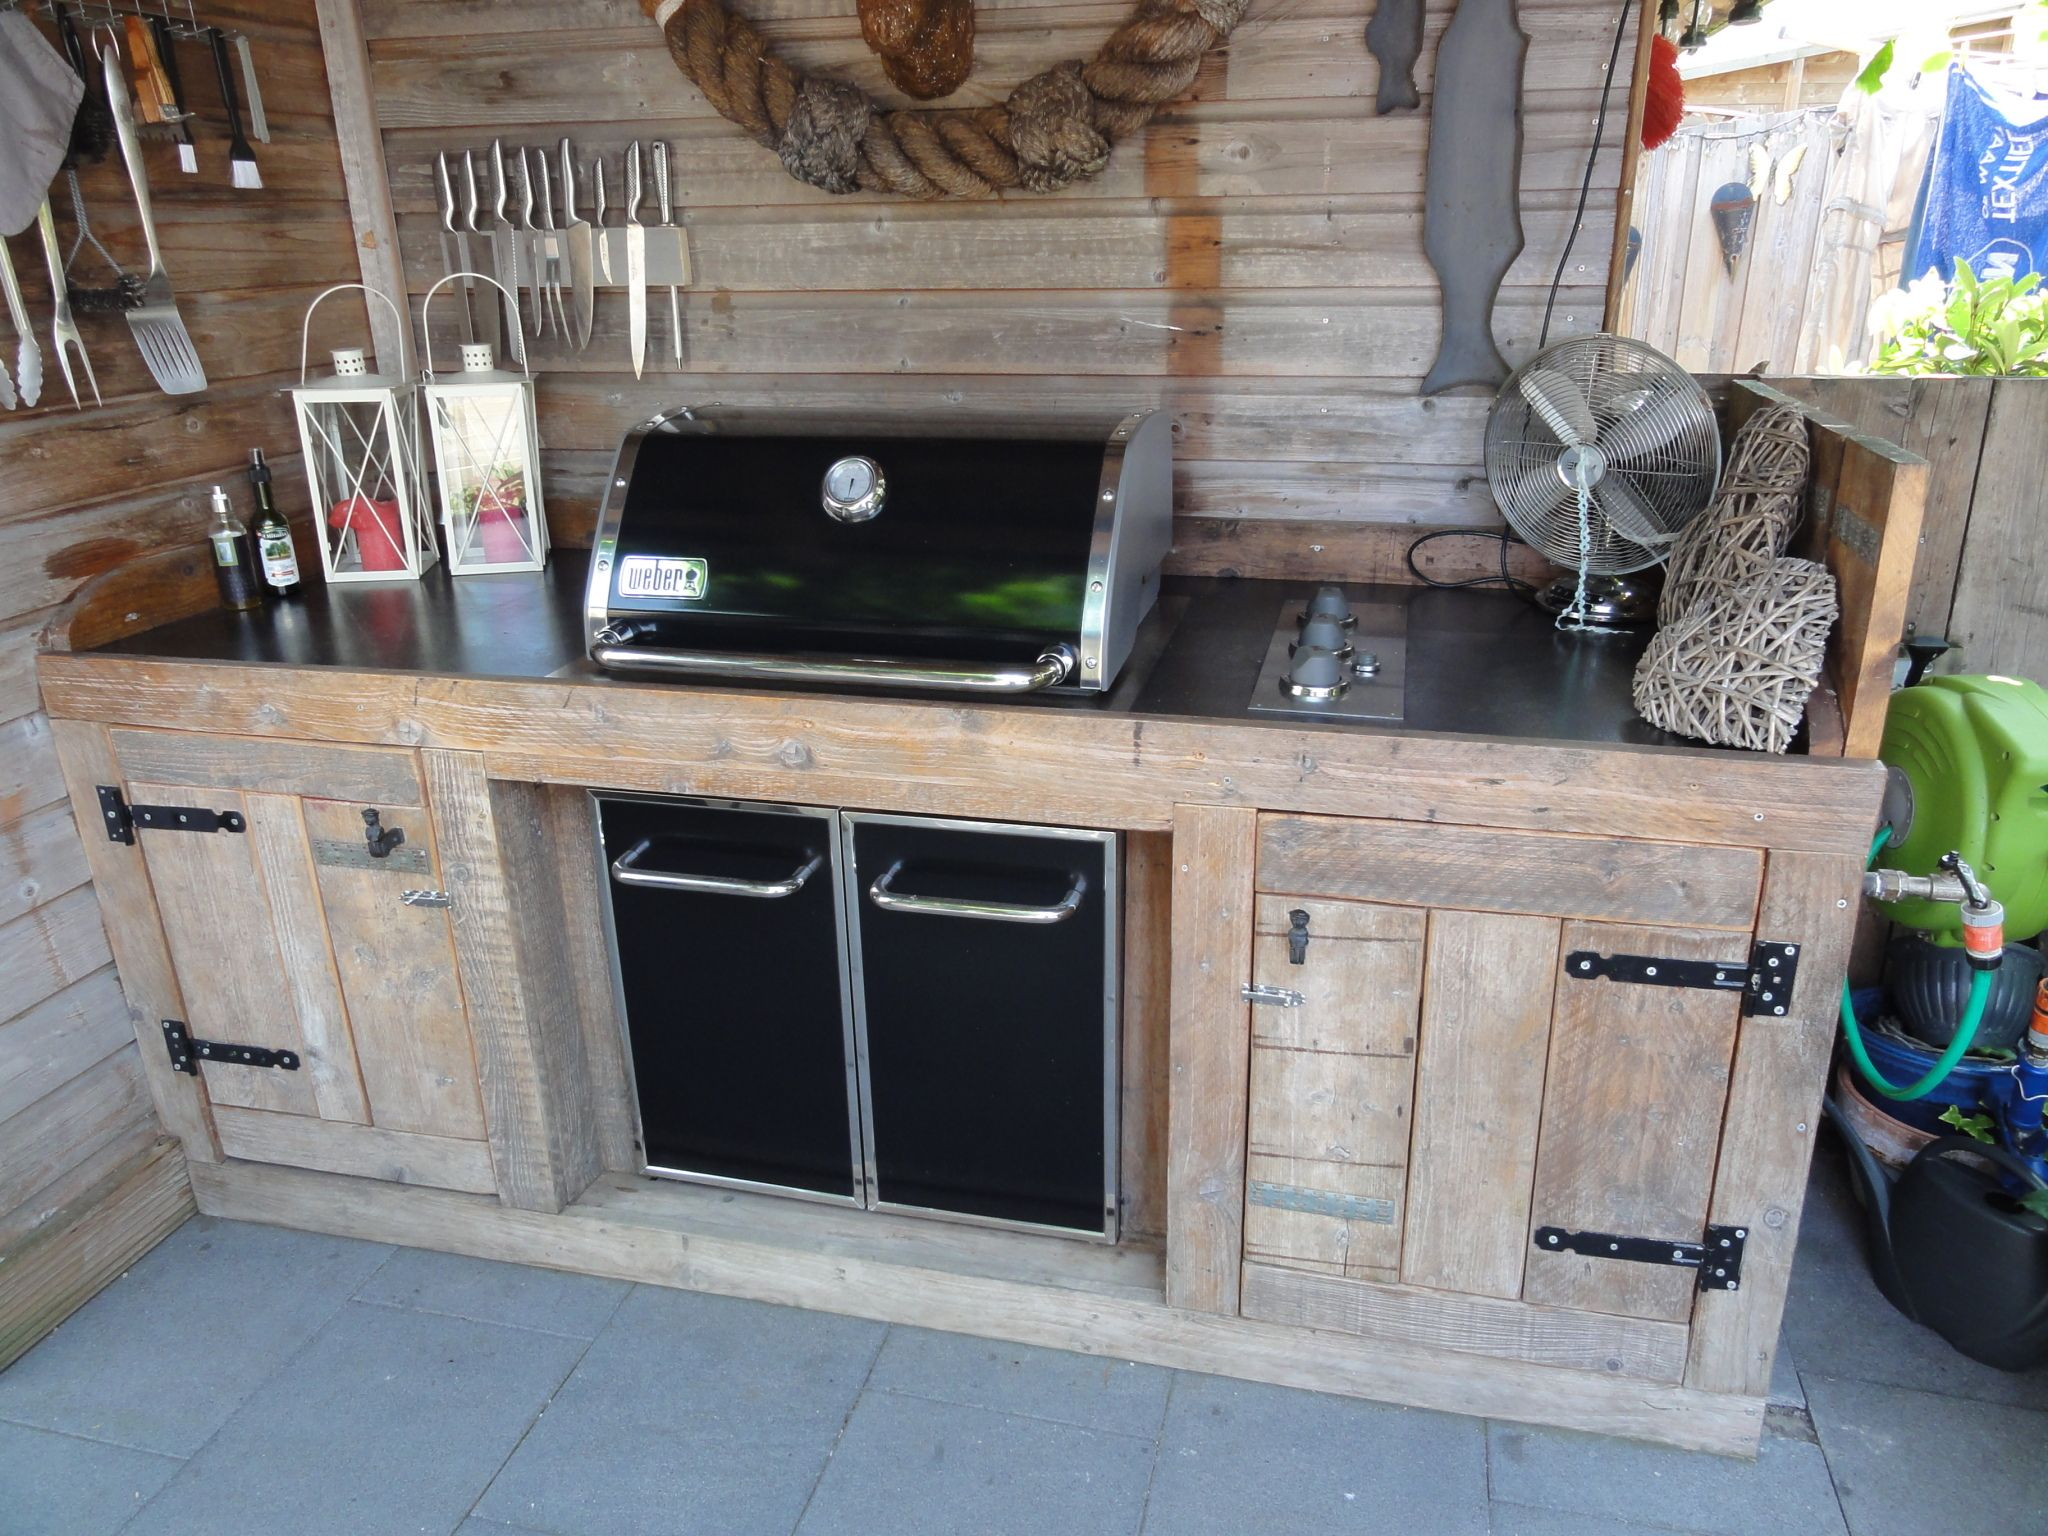 weber genesis buiten keuken verbouwing in 2018 pinterest outdoor k che garten und garten. Black Bedroom Furniture Sets. Home Design Ideas